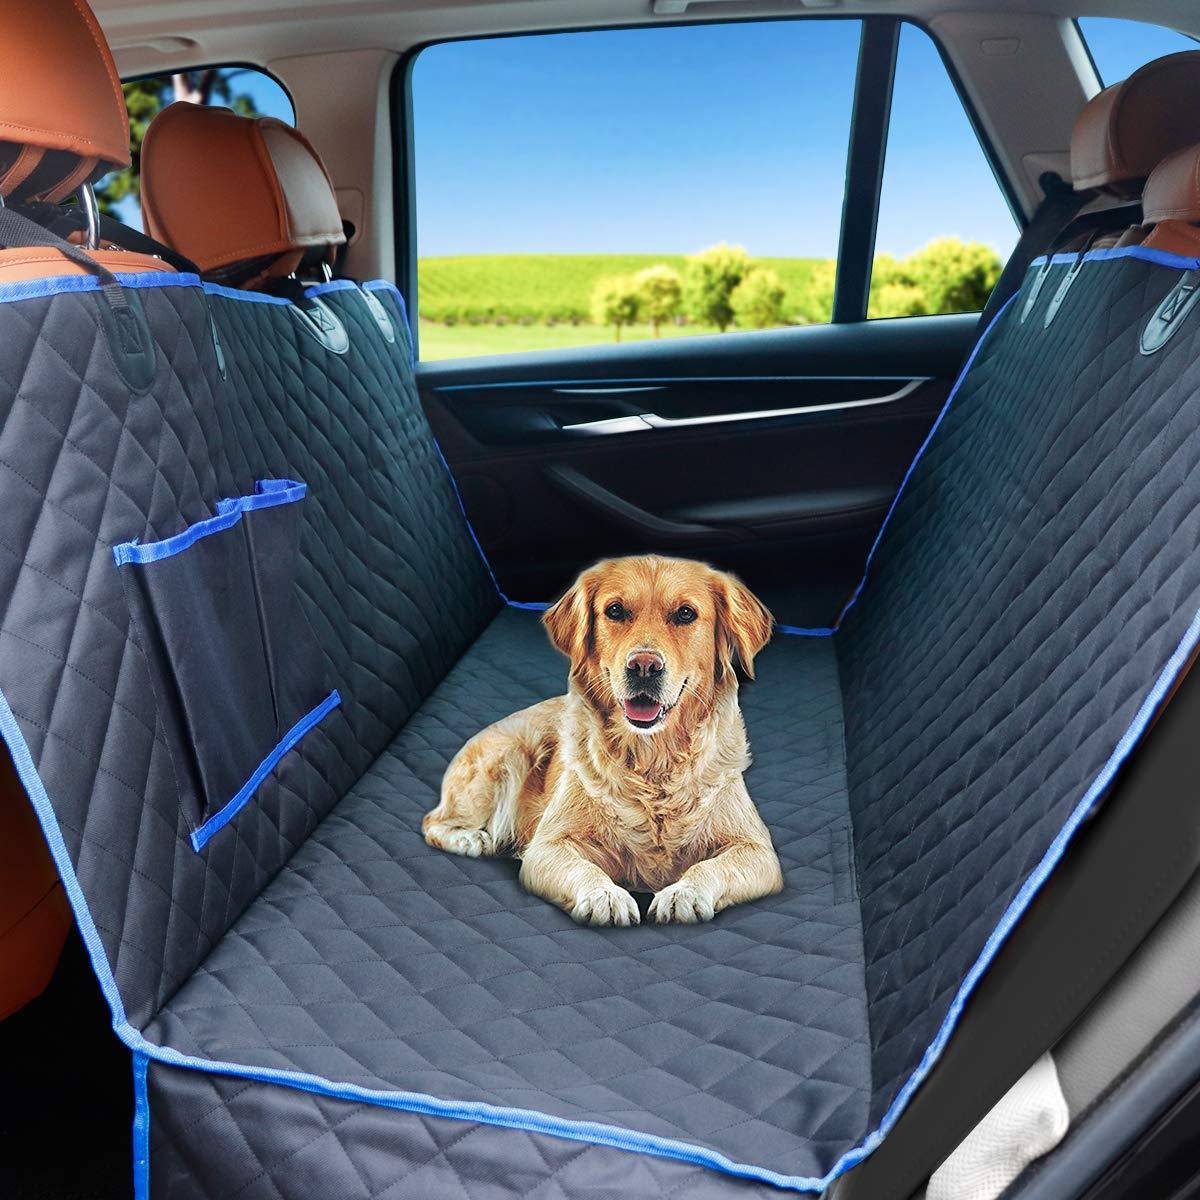 CRAZYLYNX Dog Car Seat Cover Waterproof Scratch Proof Non-slip Back//blue Seat Pet Protection Dog Travel Hammock 148cm X 138cm for All Cars